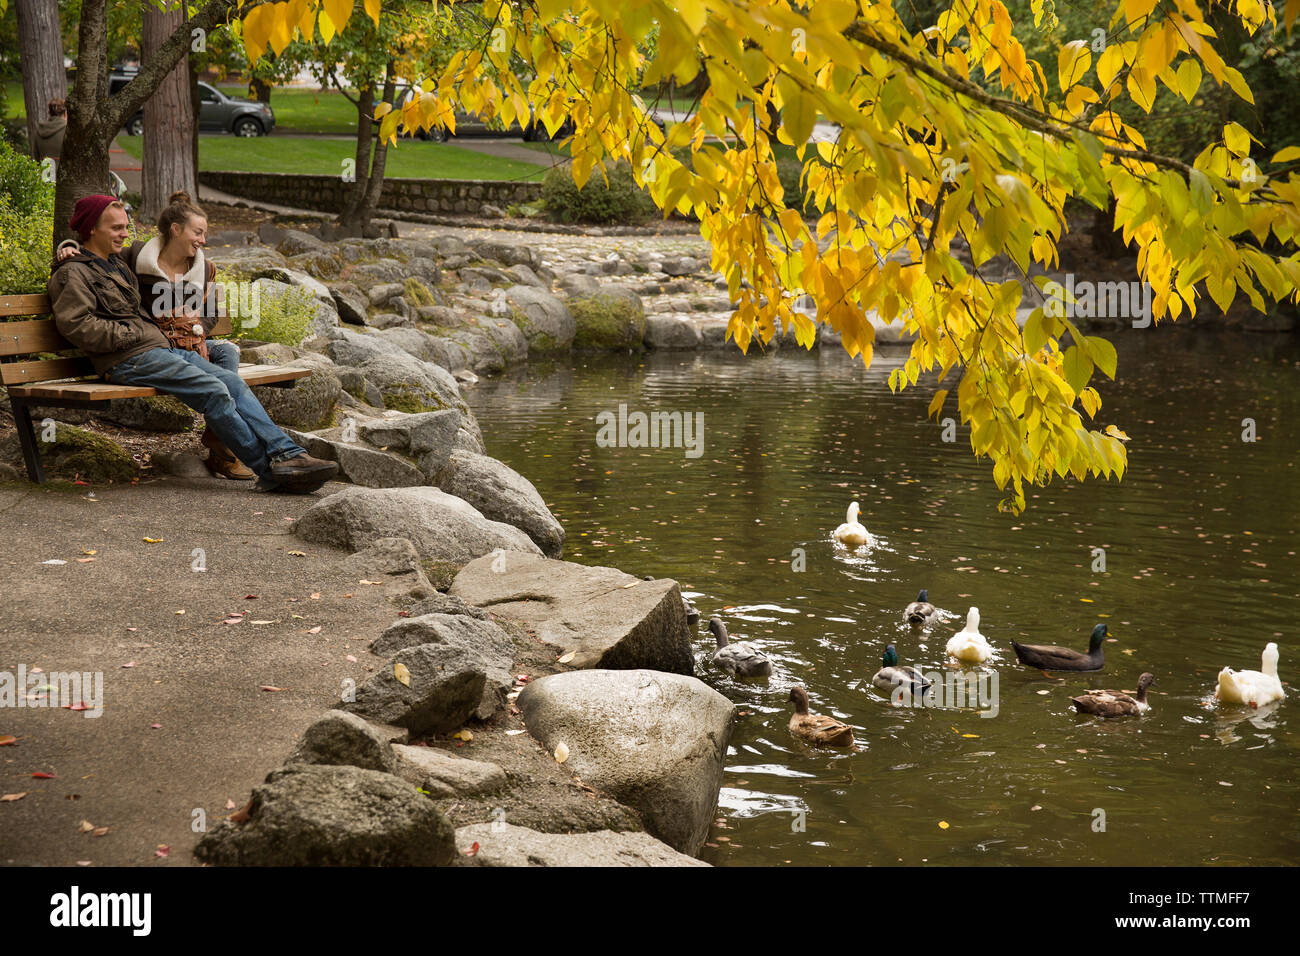 USA, Oregon, Ashland, a couple sit and watch the ducks swim in the Lithia River in Lithia Park - Stock Image